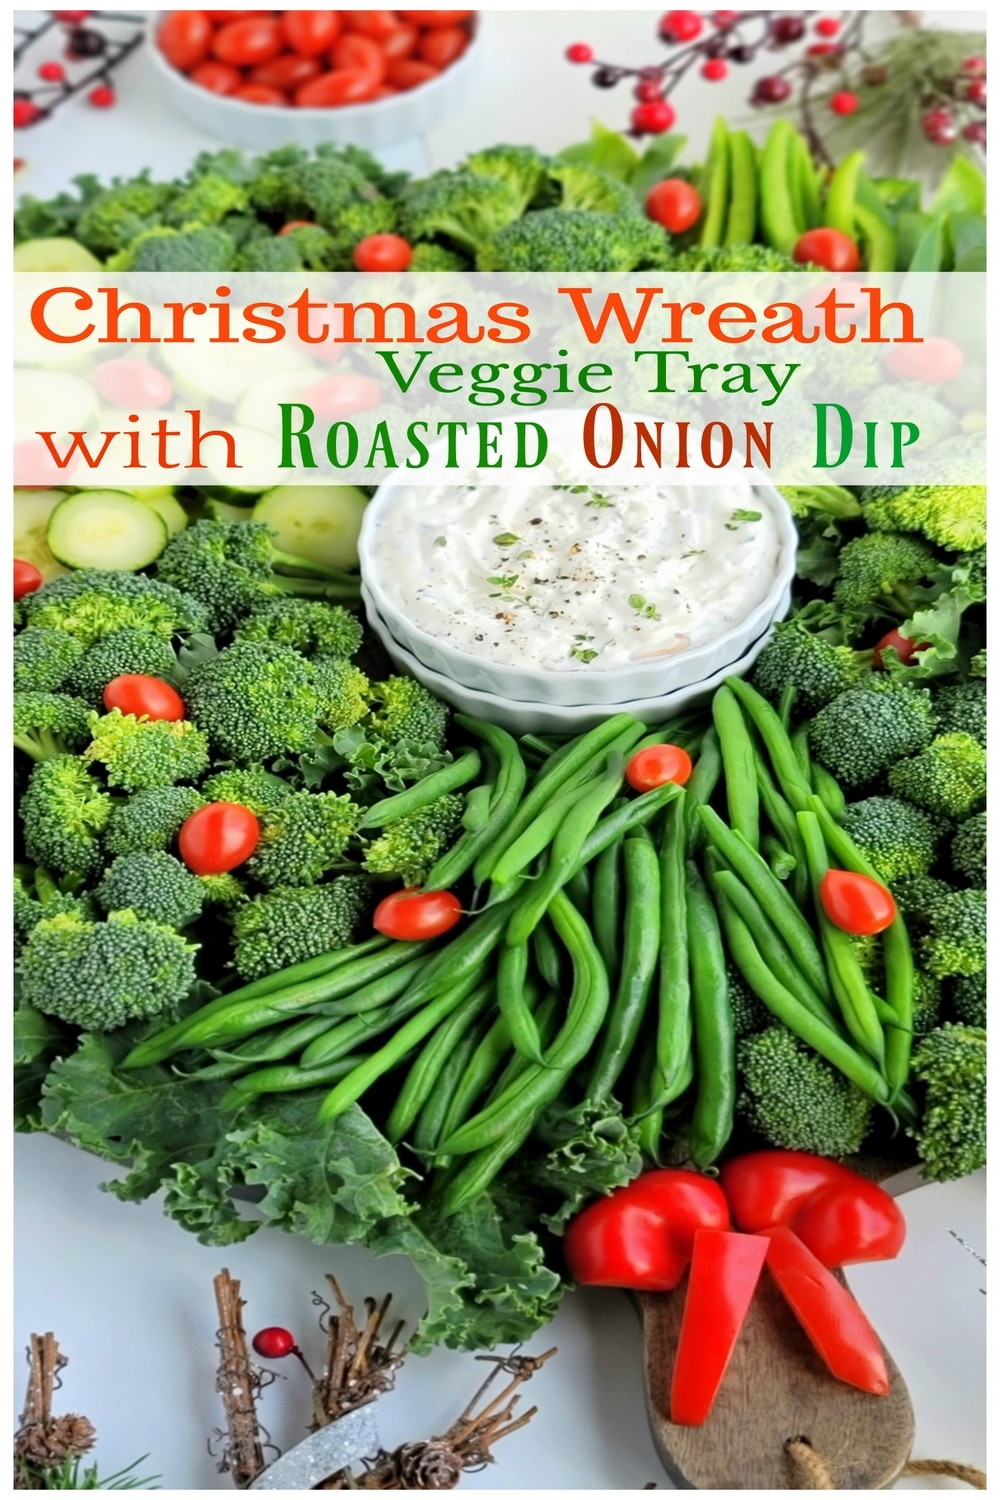 A simple Christmas Wreath Vegetable tray made from your favorite veggies and served with a tasty, addictive onion dip! via @cmpollak1